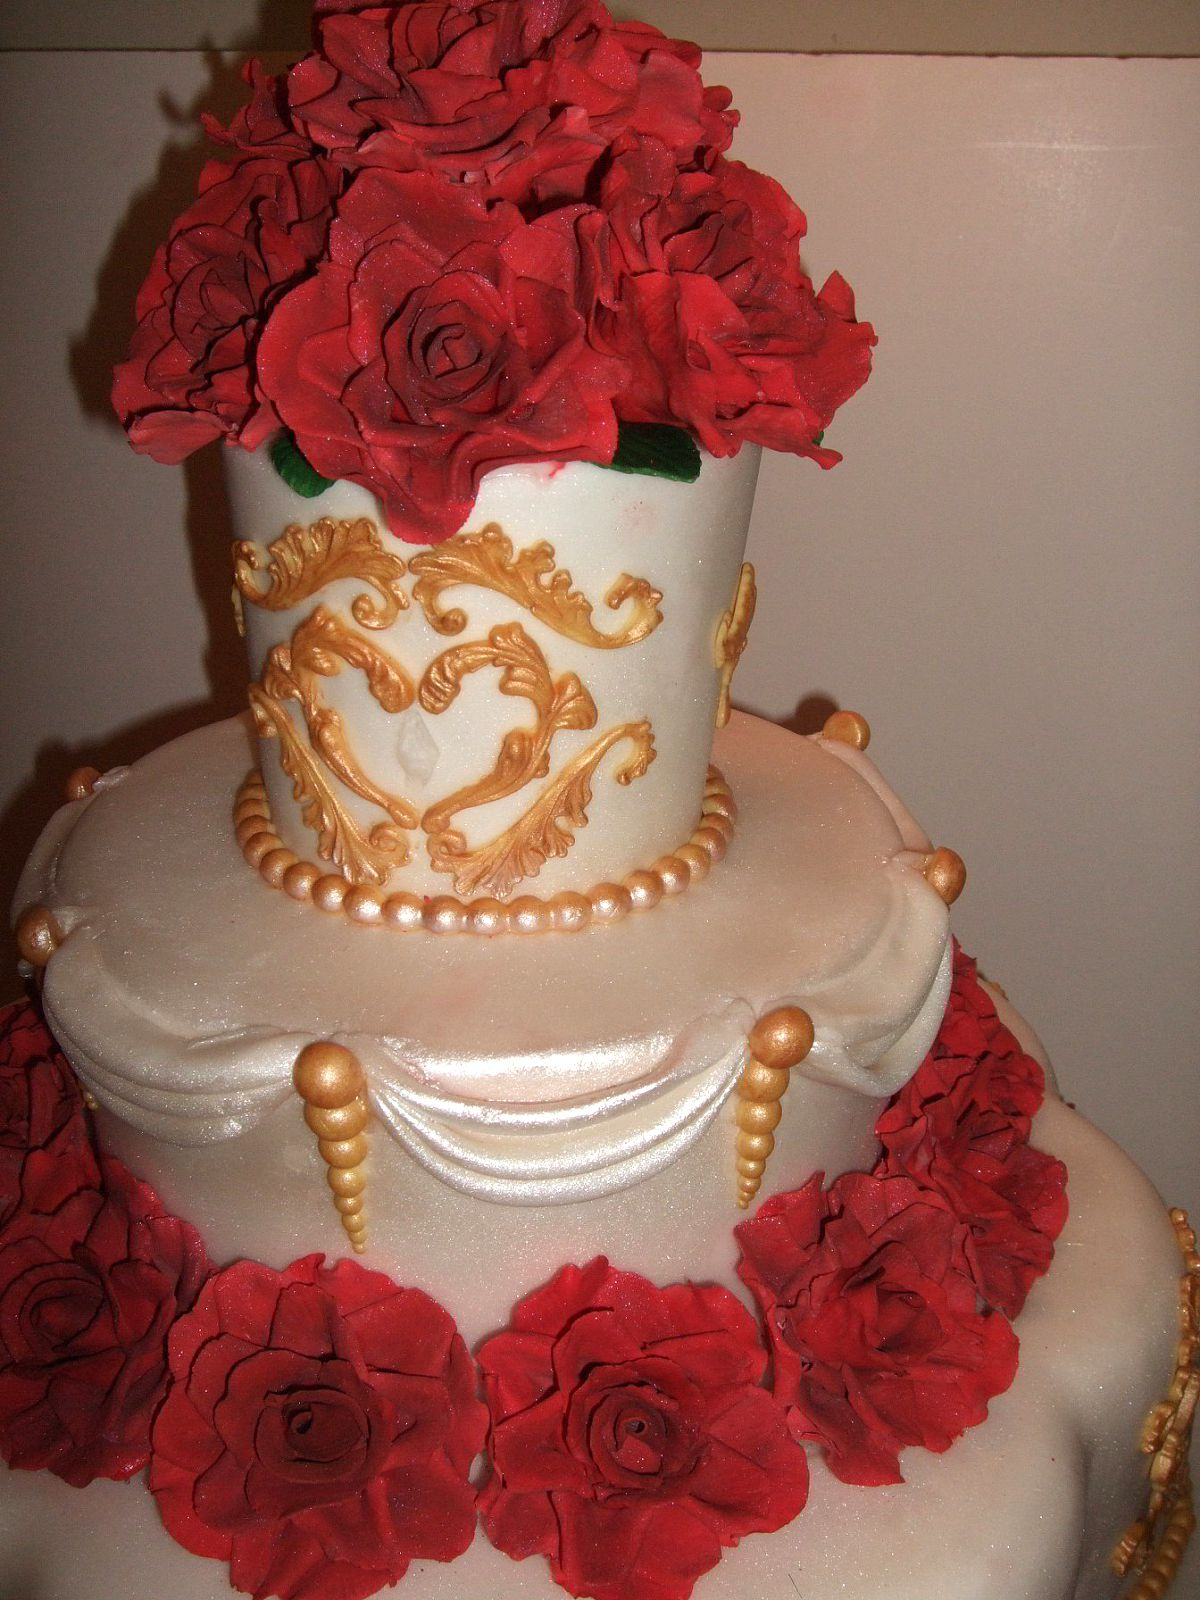 Cake Decorating Competition Show : Cake Sophistication - The Blog: 2011 NC State Fair Cake ...